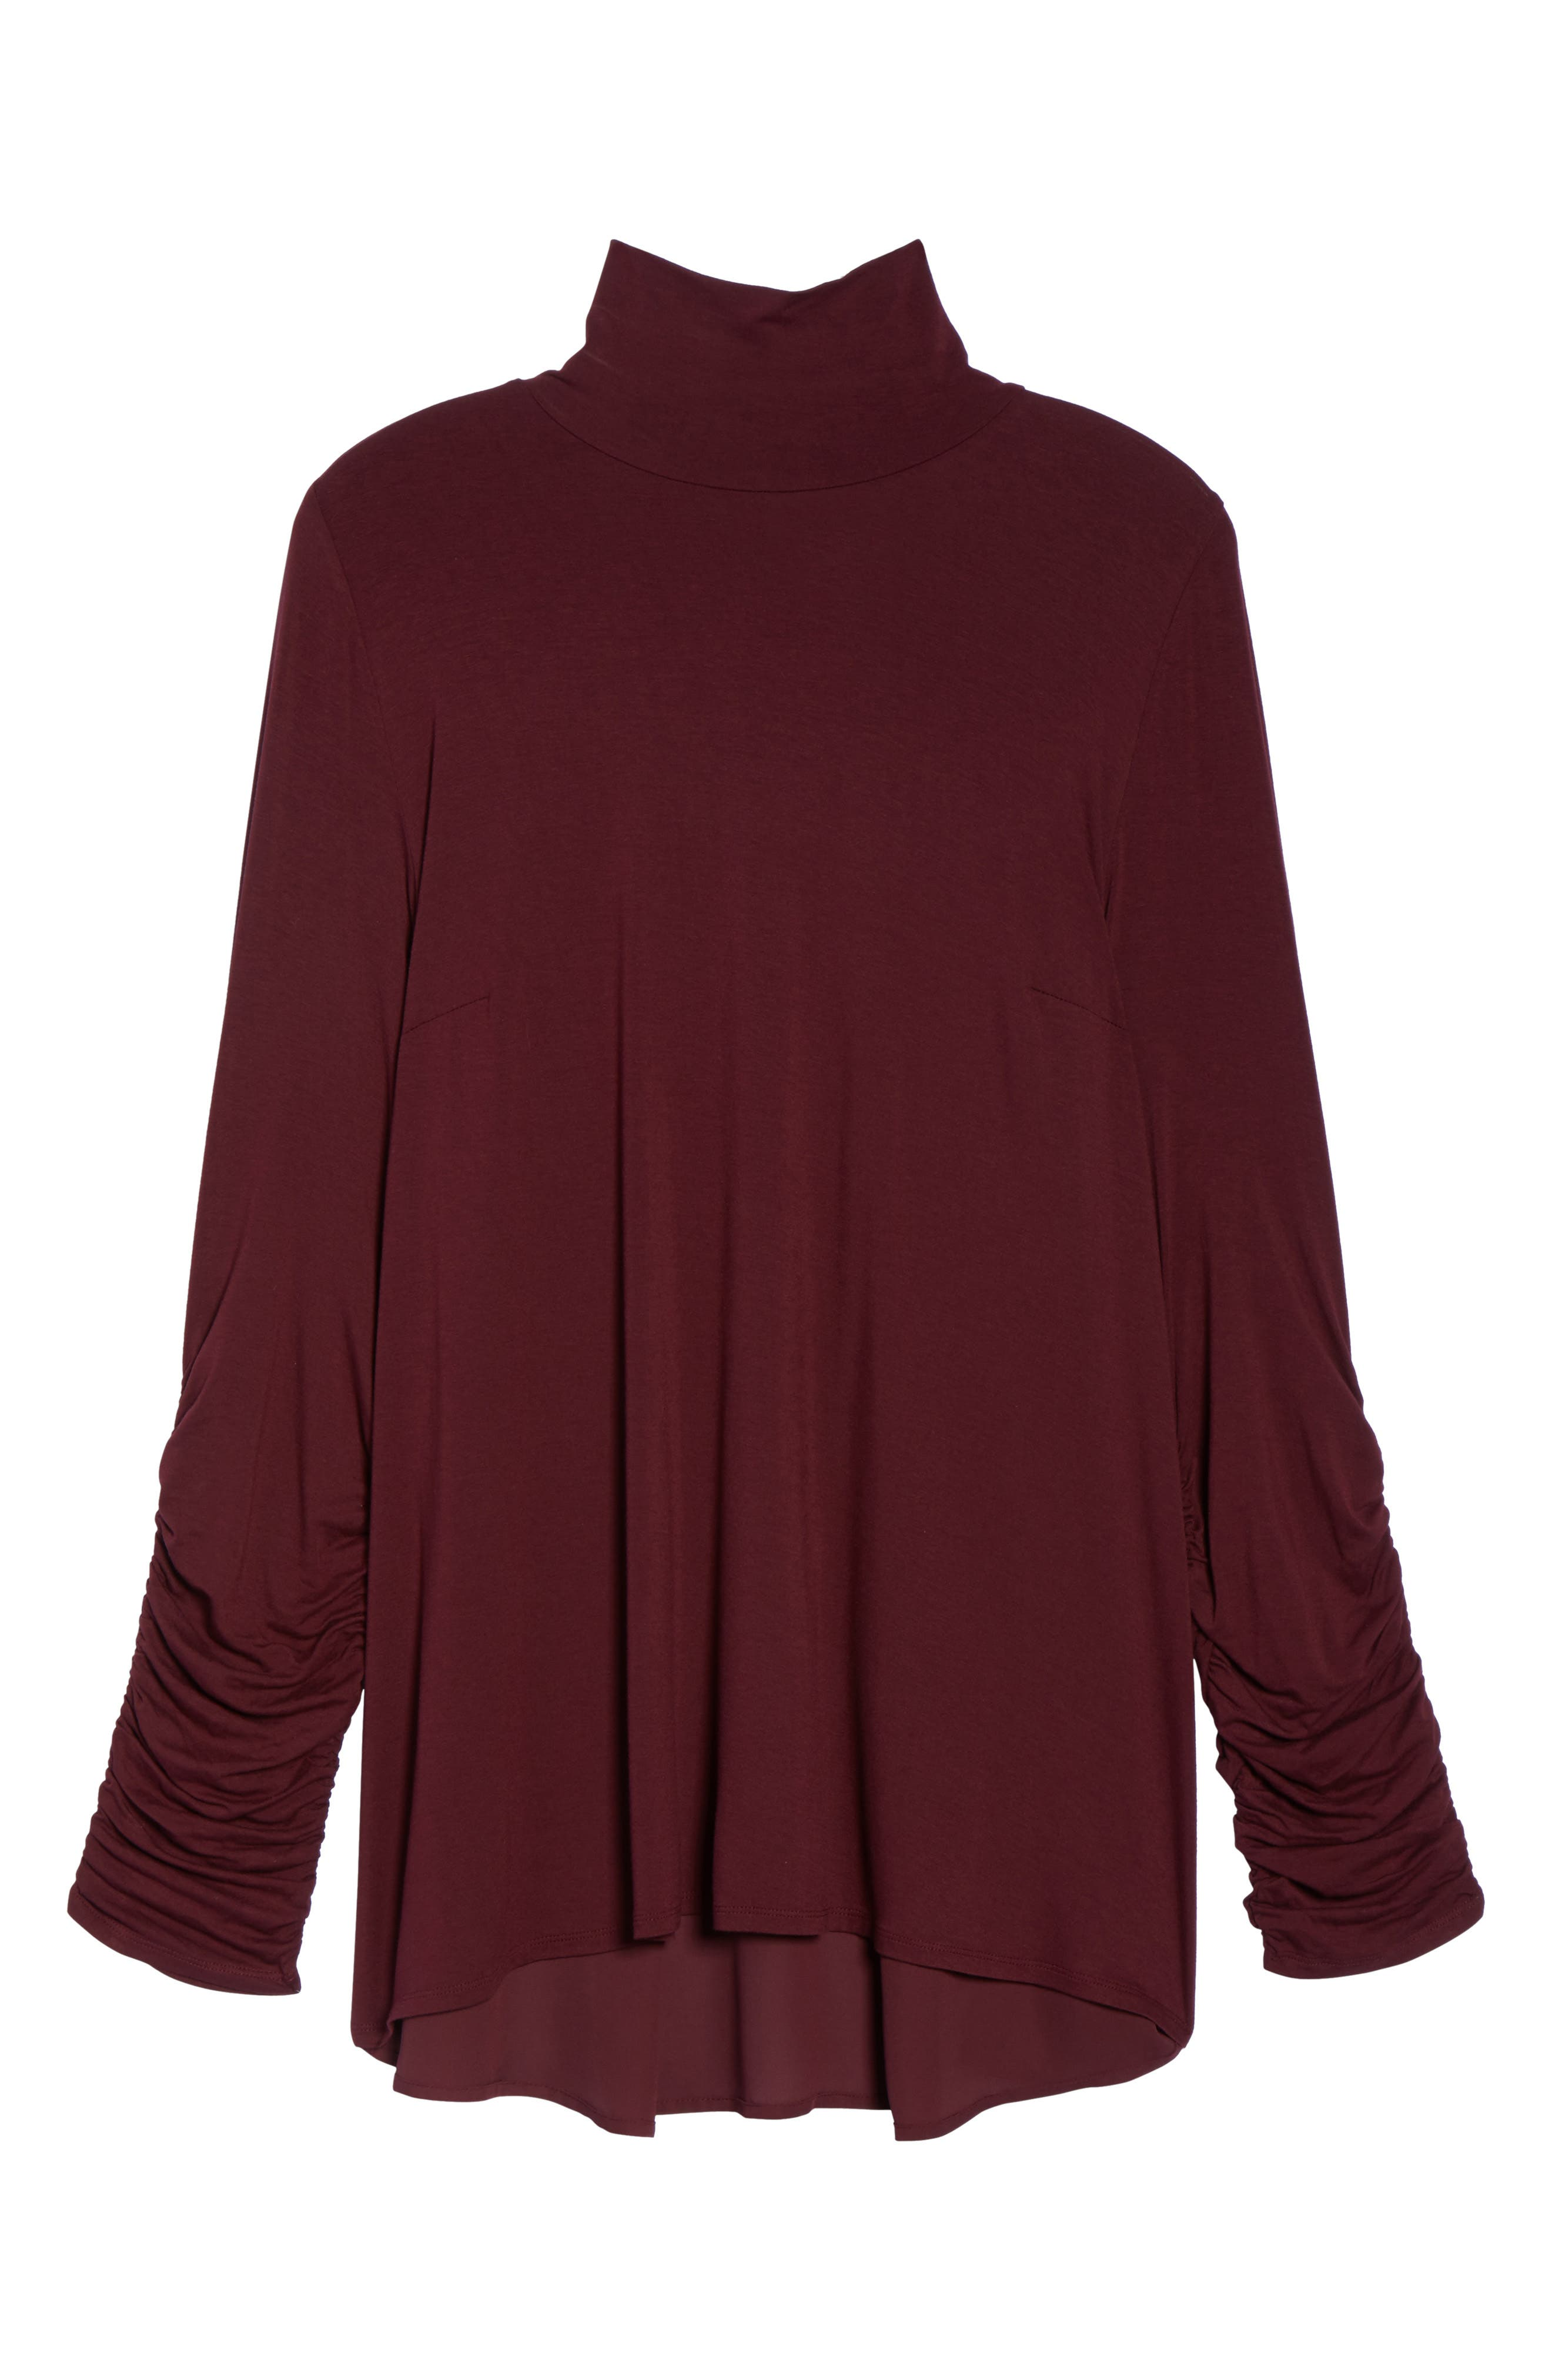 Ruched Sleeve Turtleneck Top,                             Alternate thumbnail 6, color,                             018